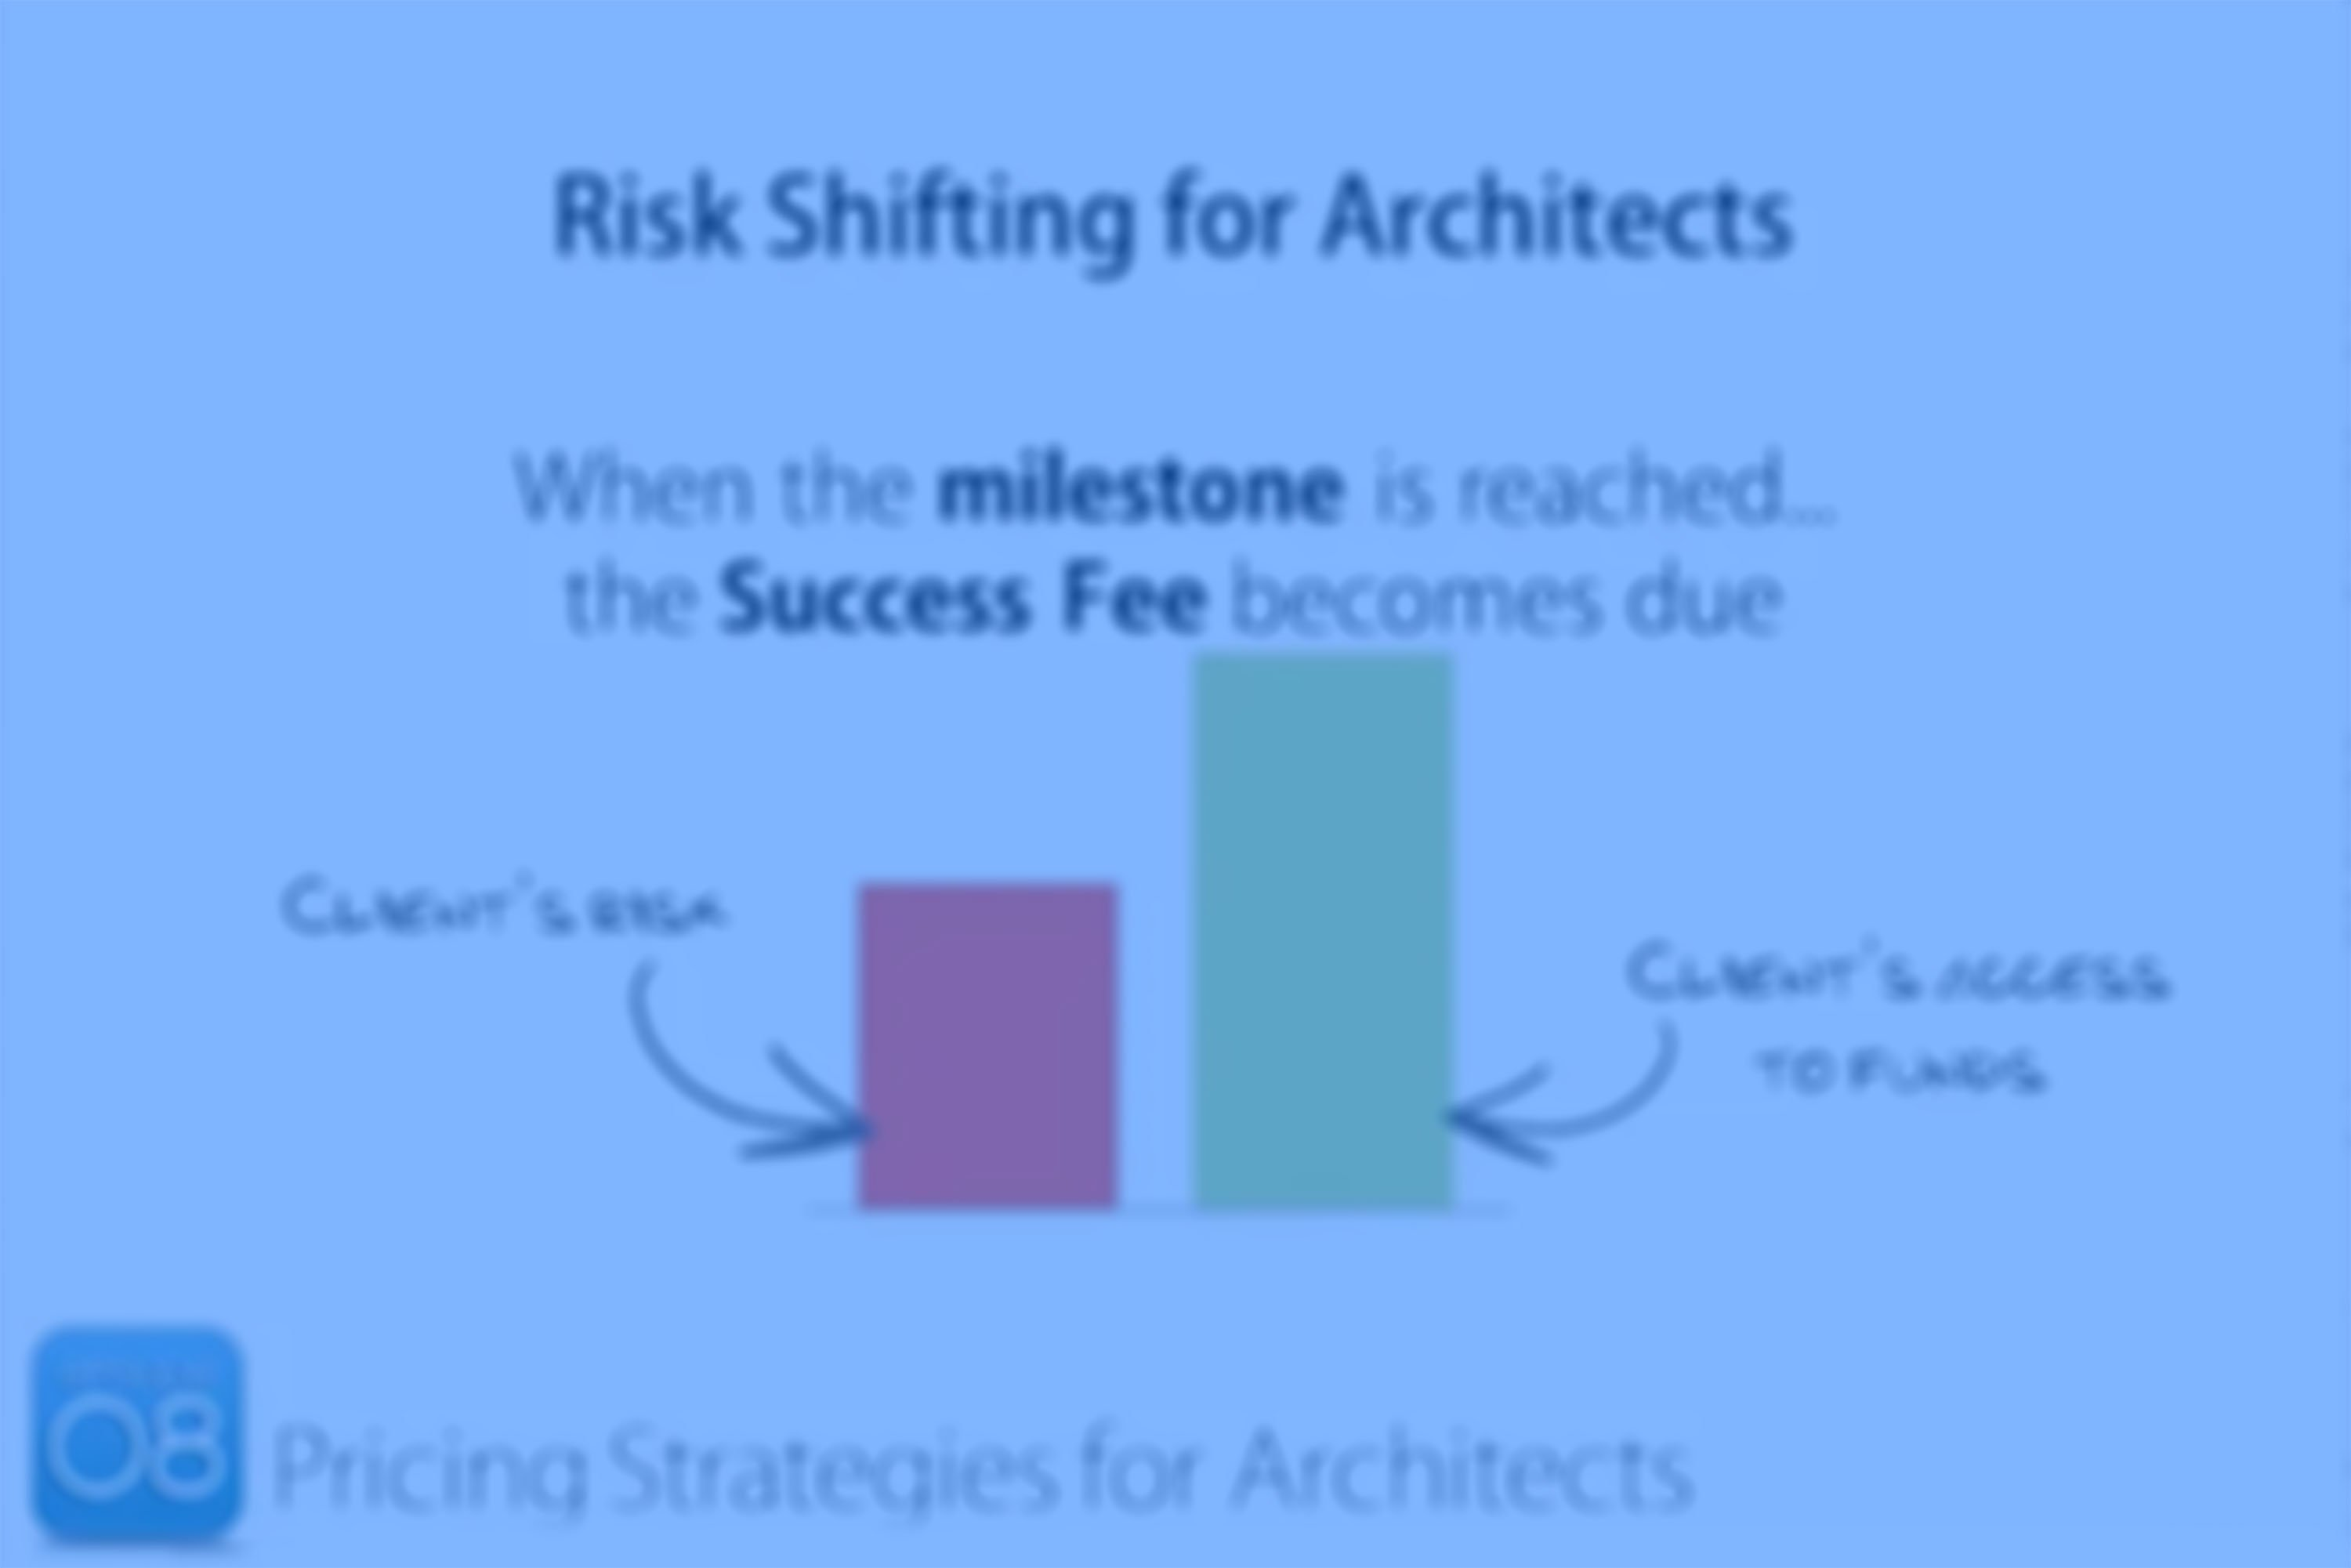 Episode 08: Pricing Strategies for Architects